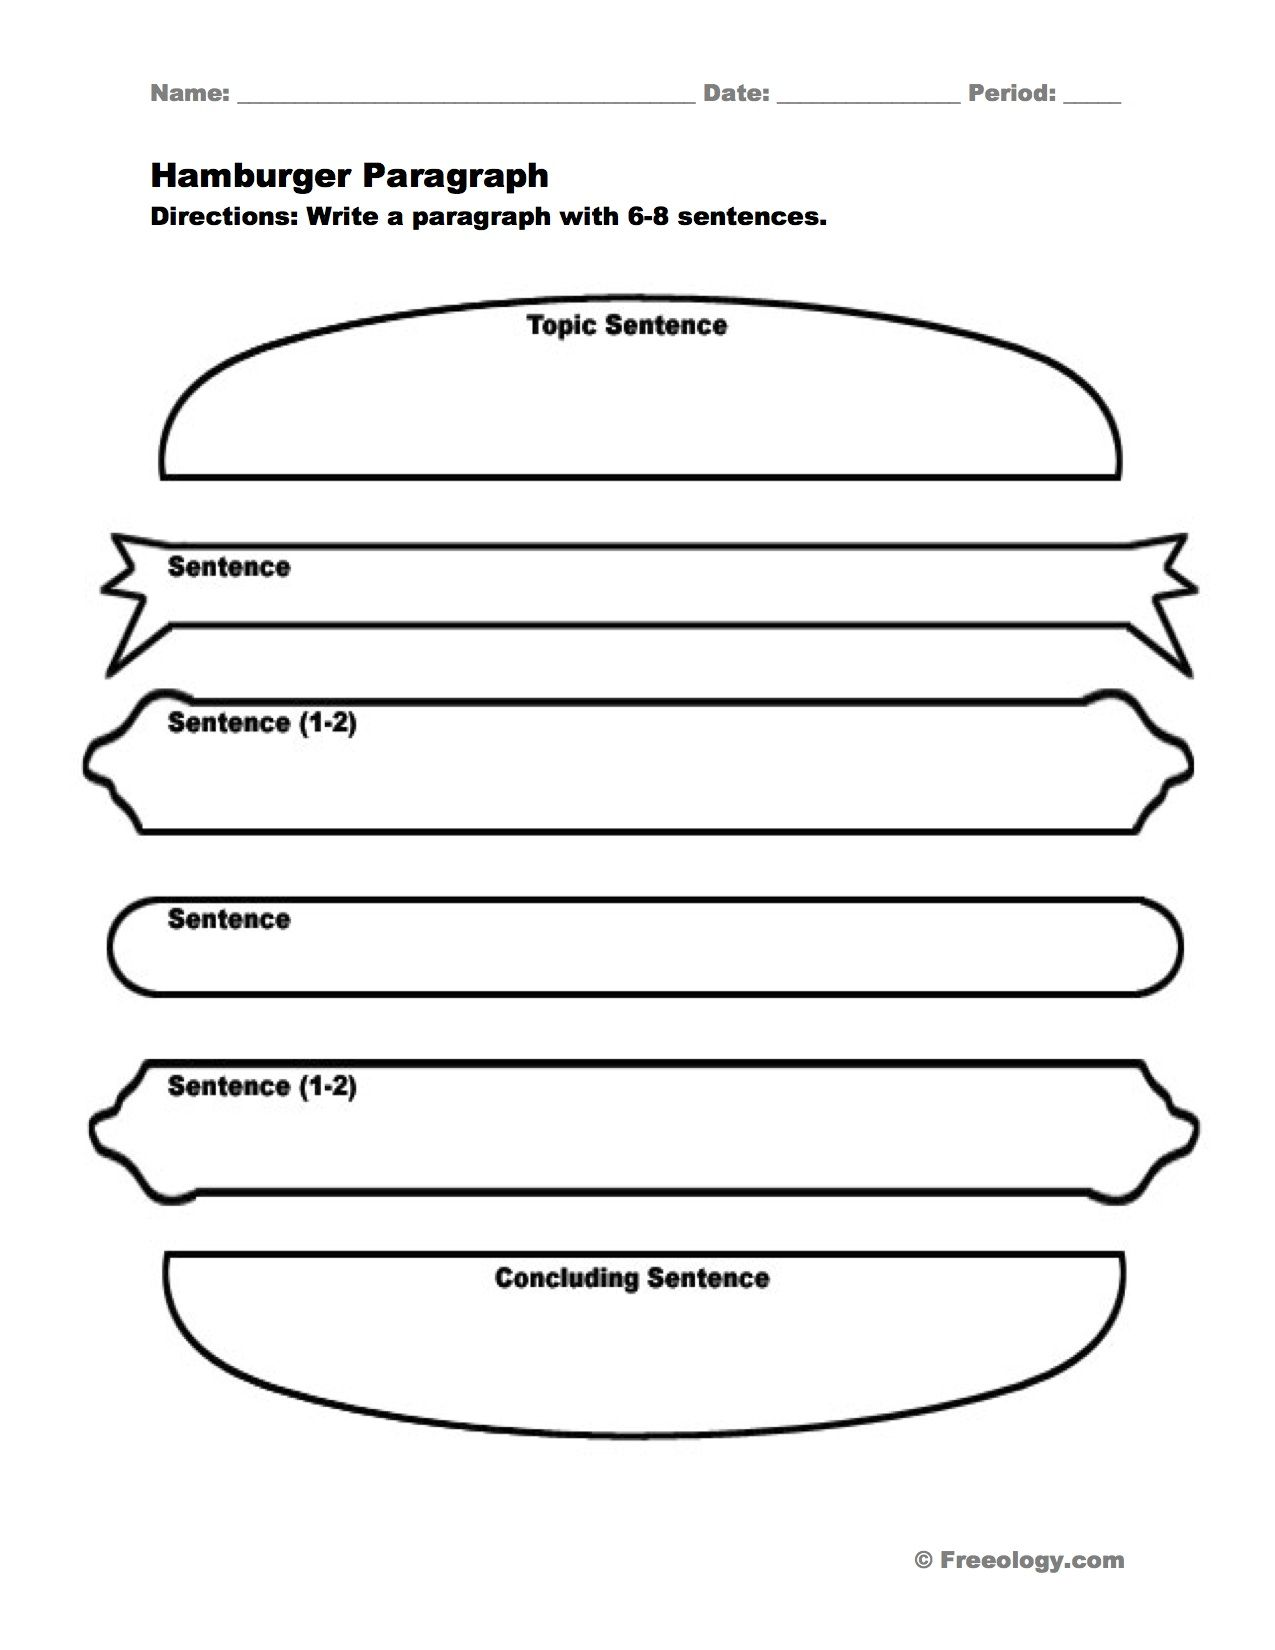 Hamburger Paragraph I Love This Graphic Organizer To Help Students Write Nice Full Paragraphs